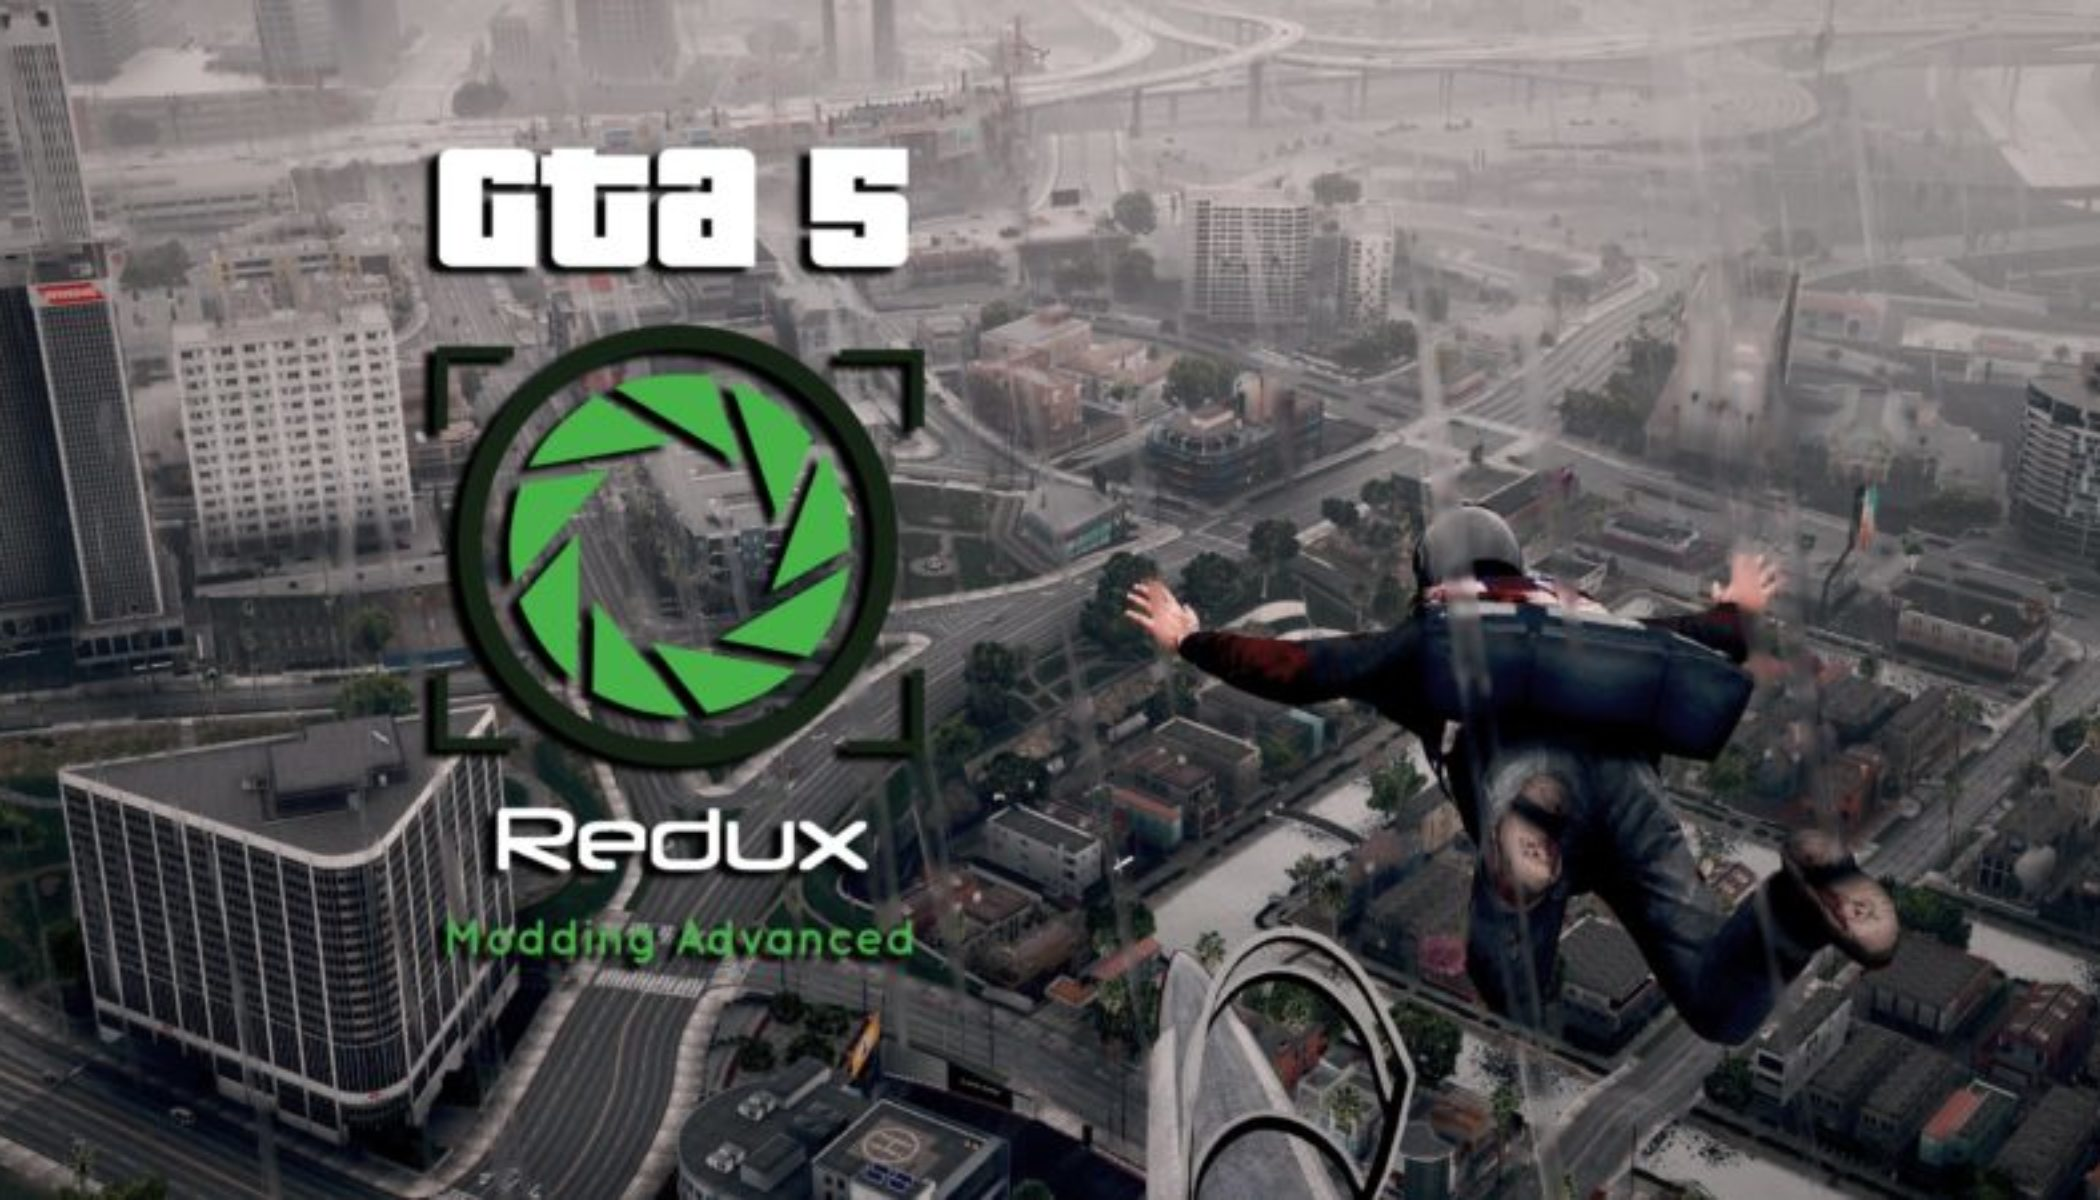 GTA V REDUX MOD Released: Downloading & Installing